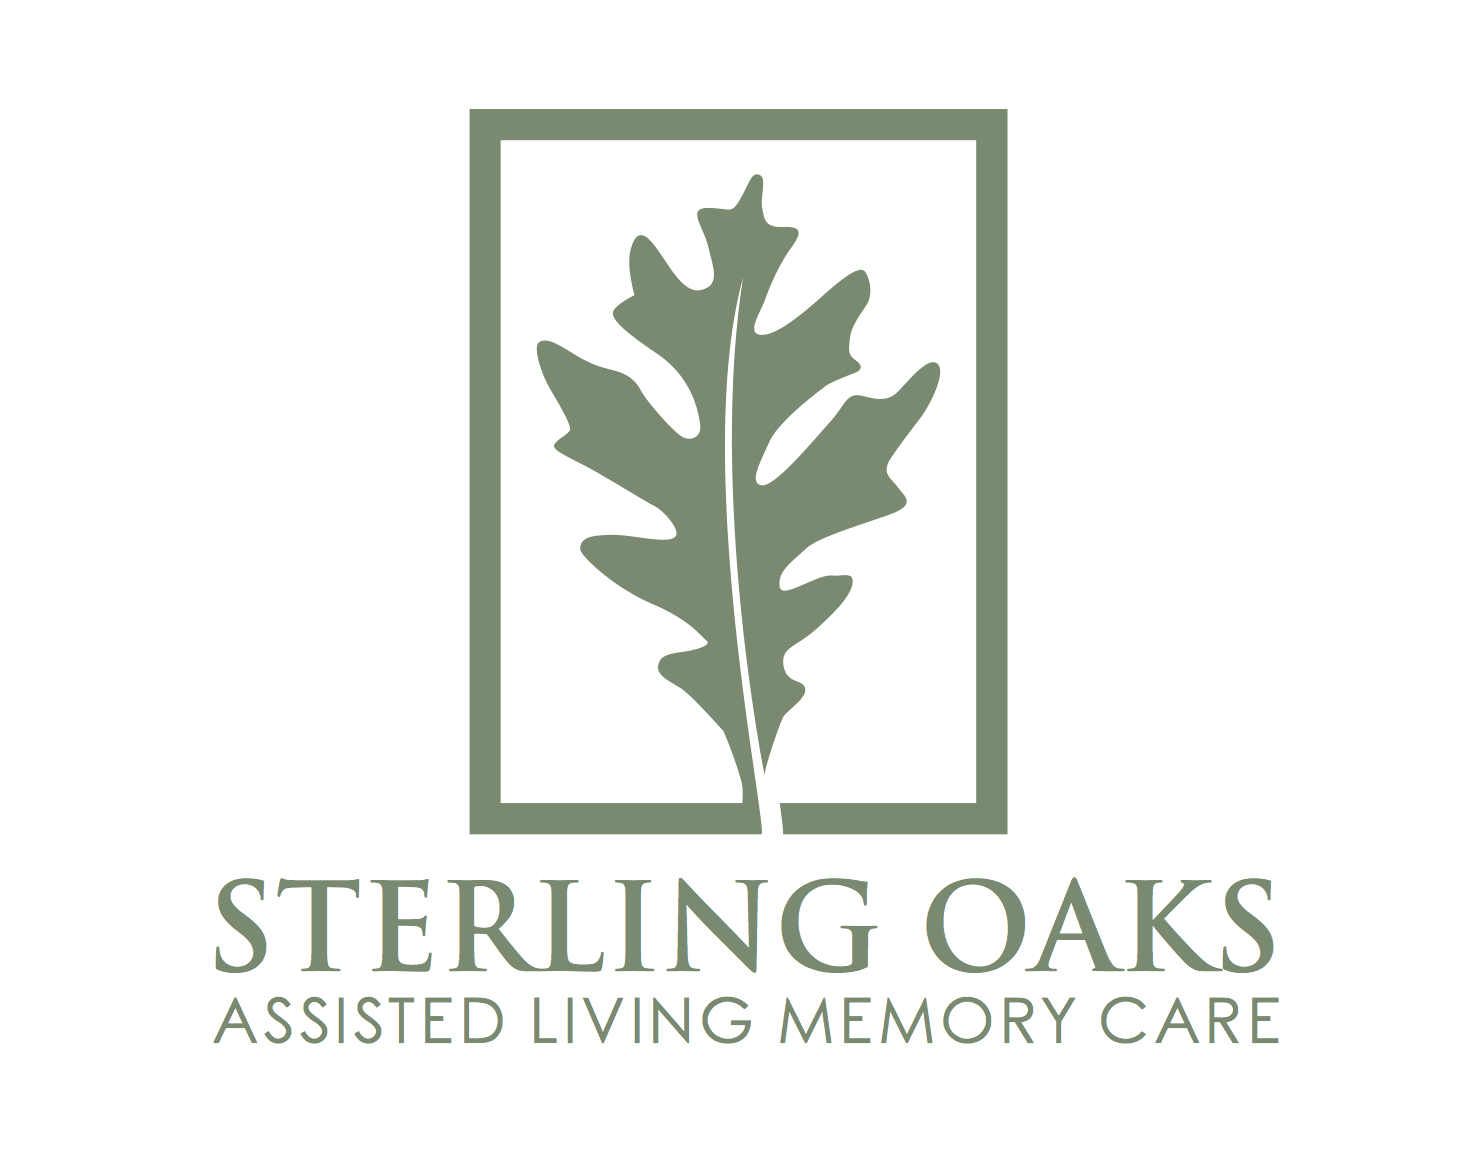 Photo 1 of Sterling Oaks Assisted Living Memory Care